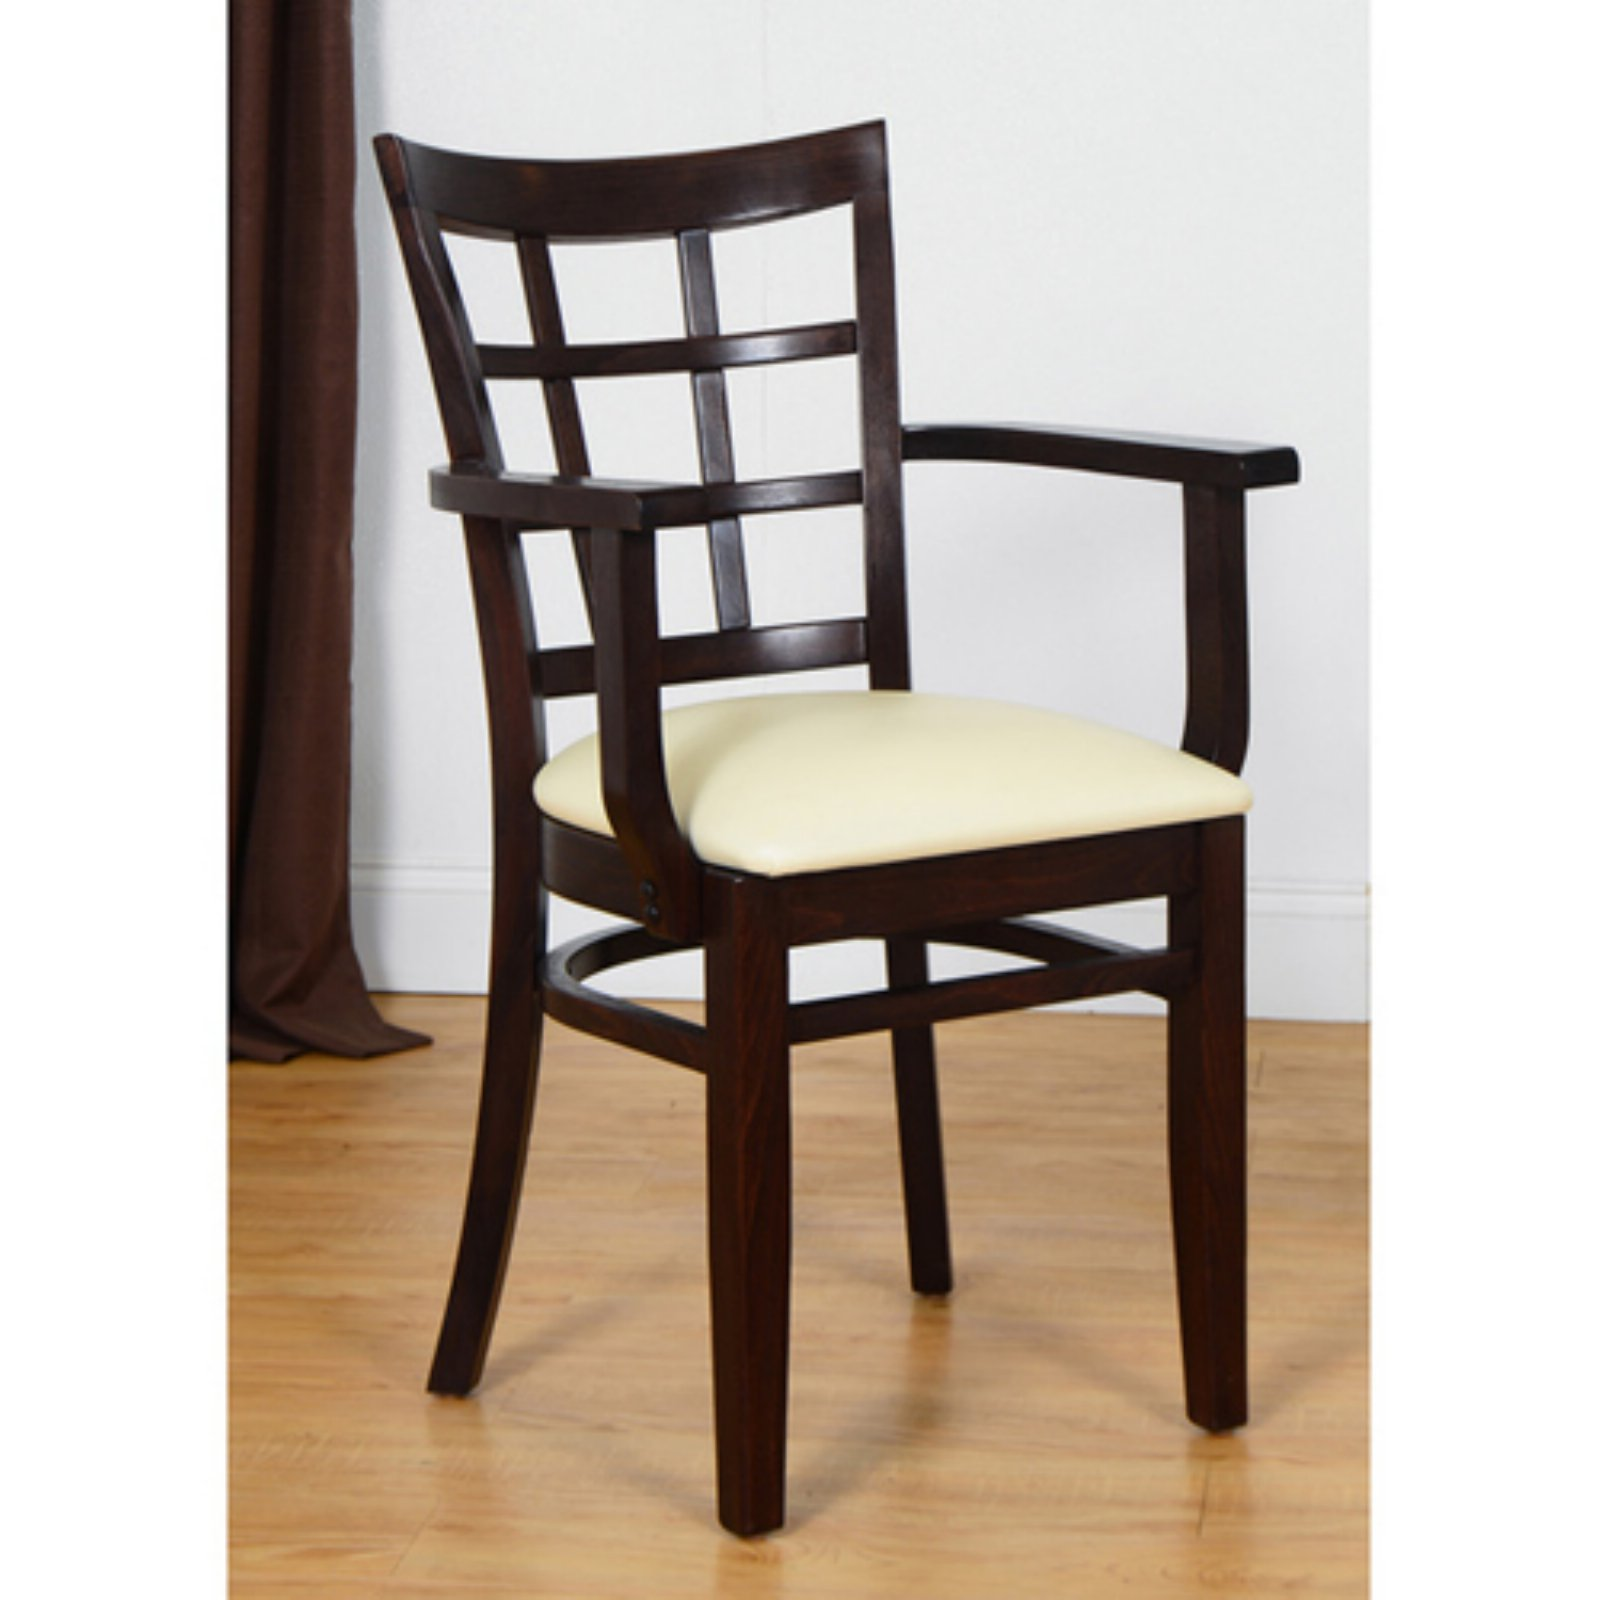 Safsil Seating Window Pane Dining Armchair by